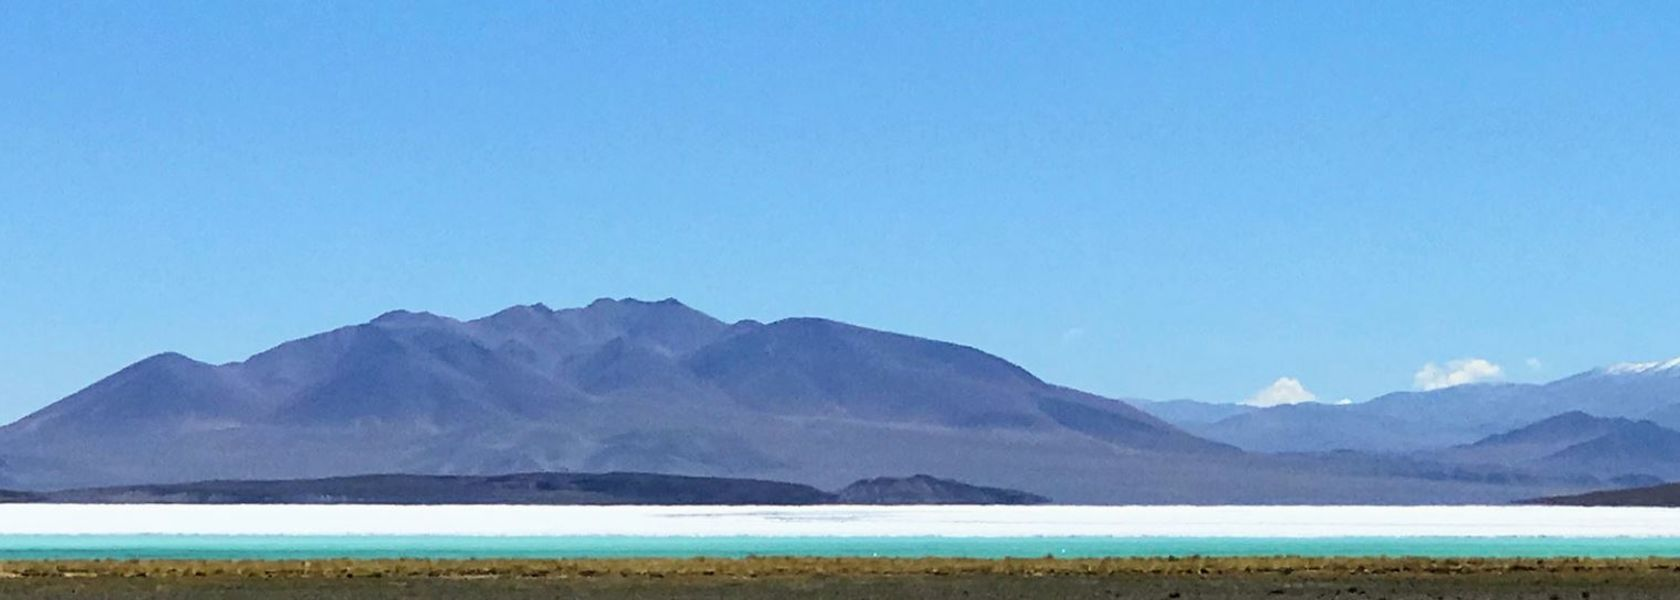 Exploration punt sees Galan hoping for many, many gallons of lithium brine